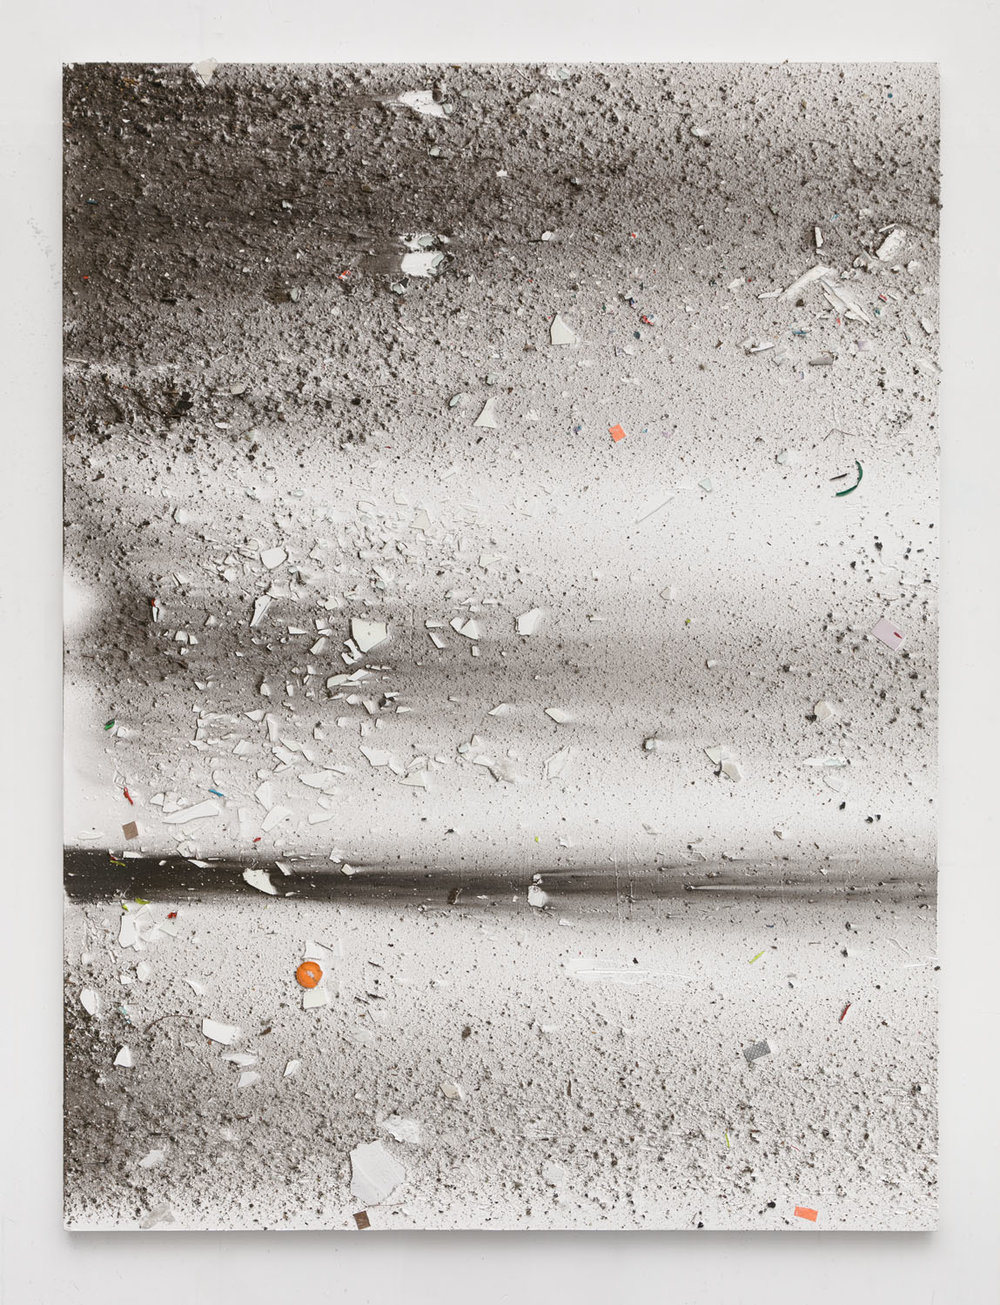 Thomas Fougeirol  Untitled, 2016  Mixed media on canvas  76 x 57 inches